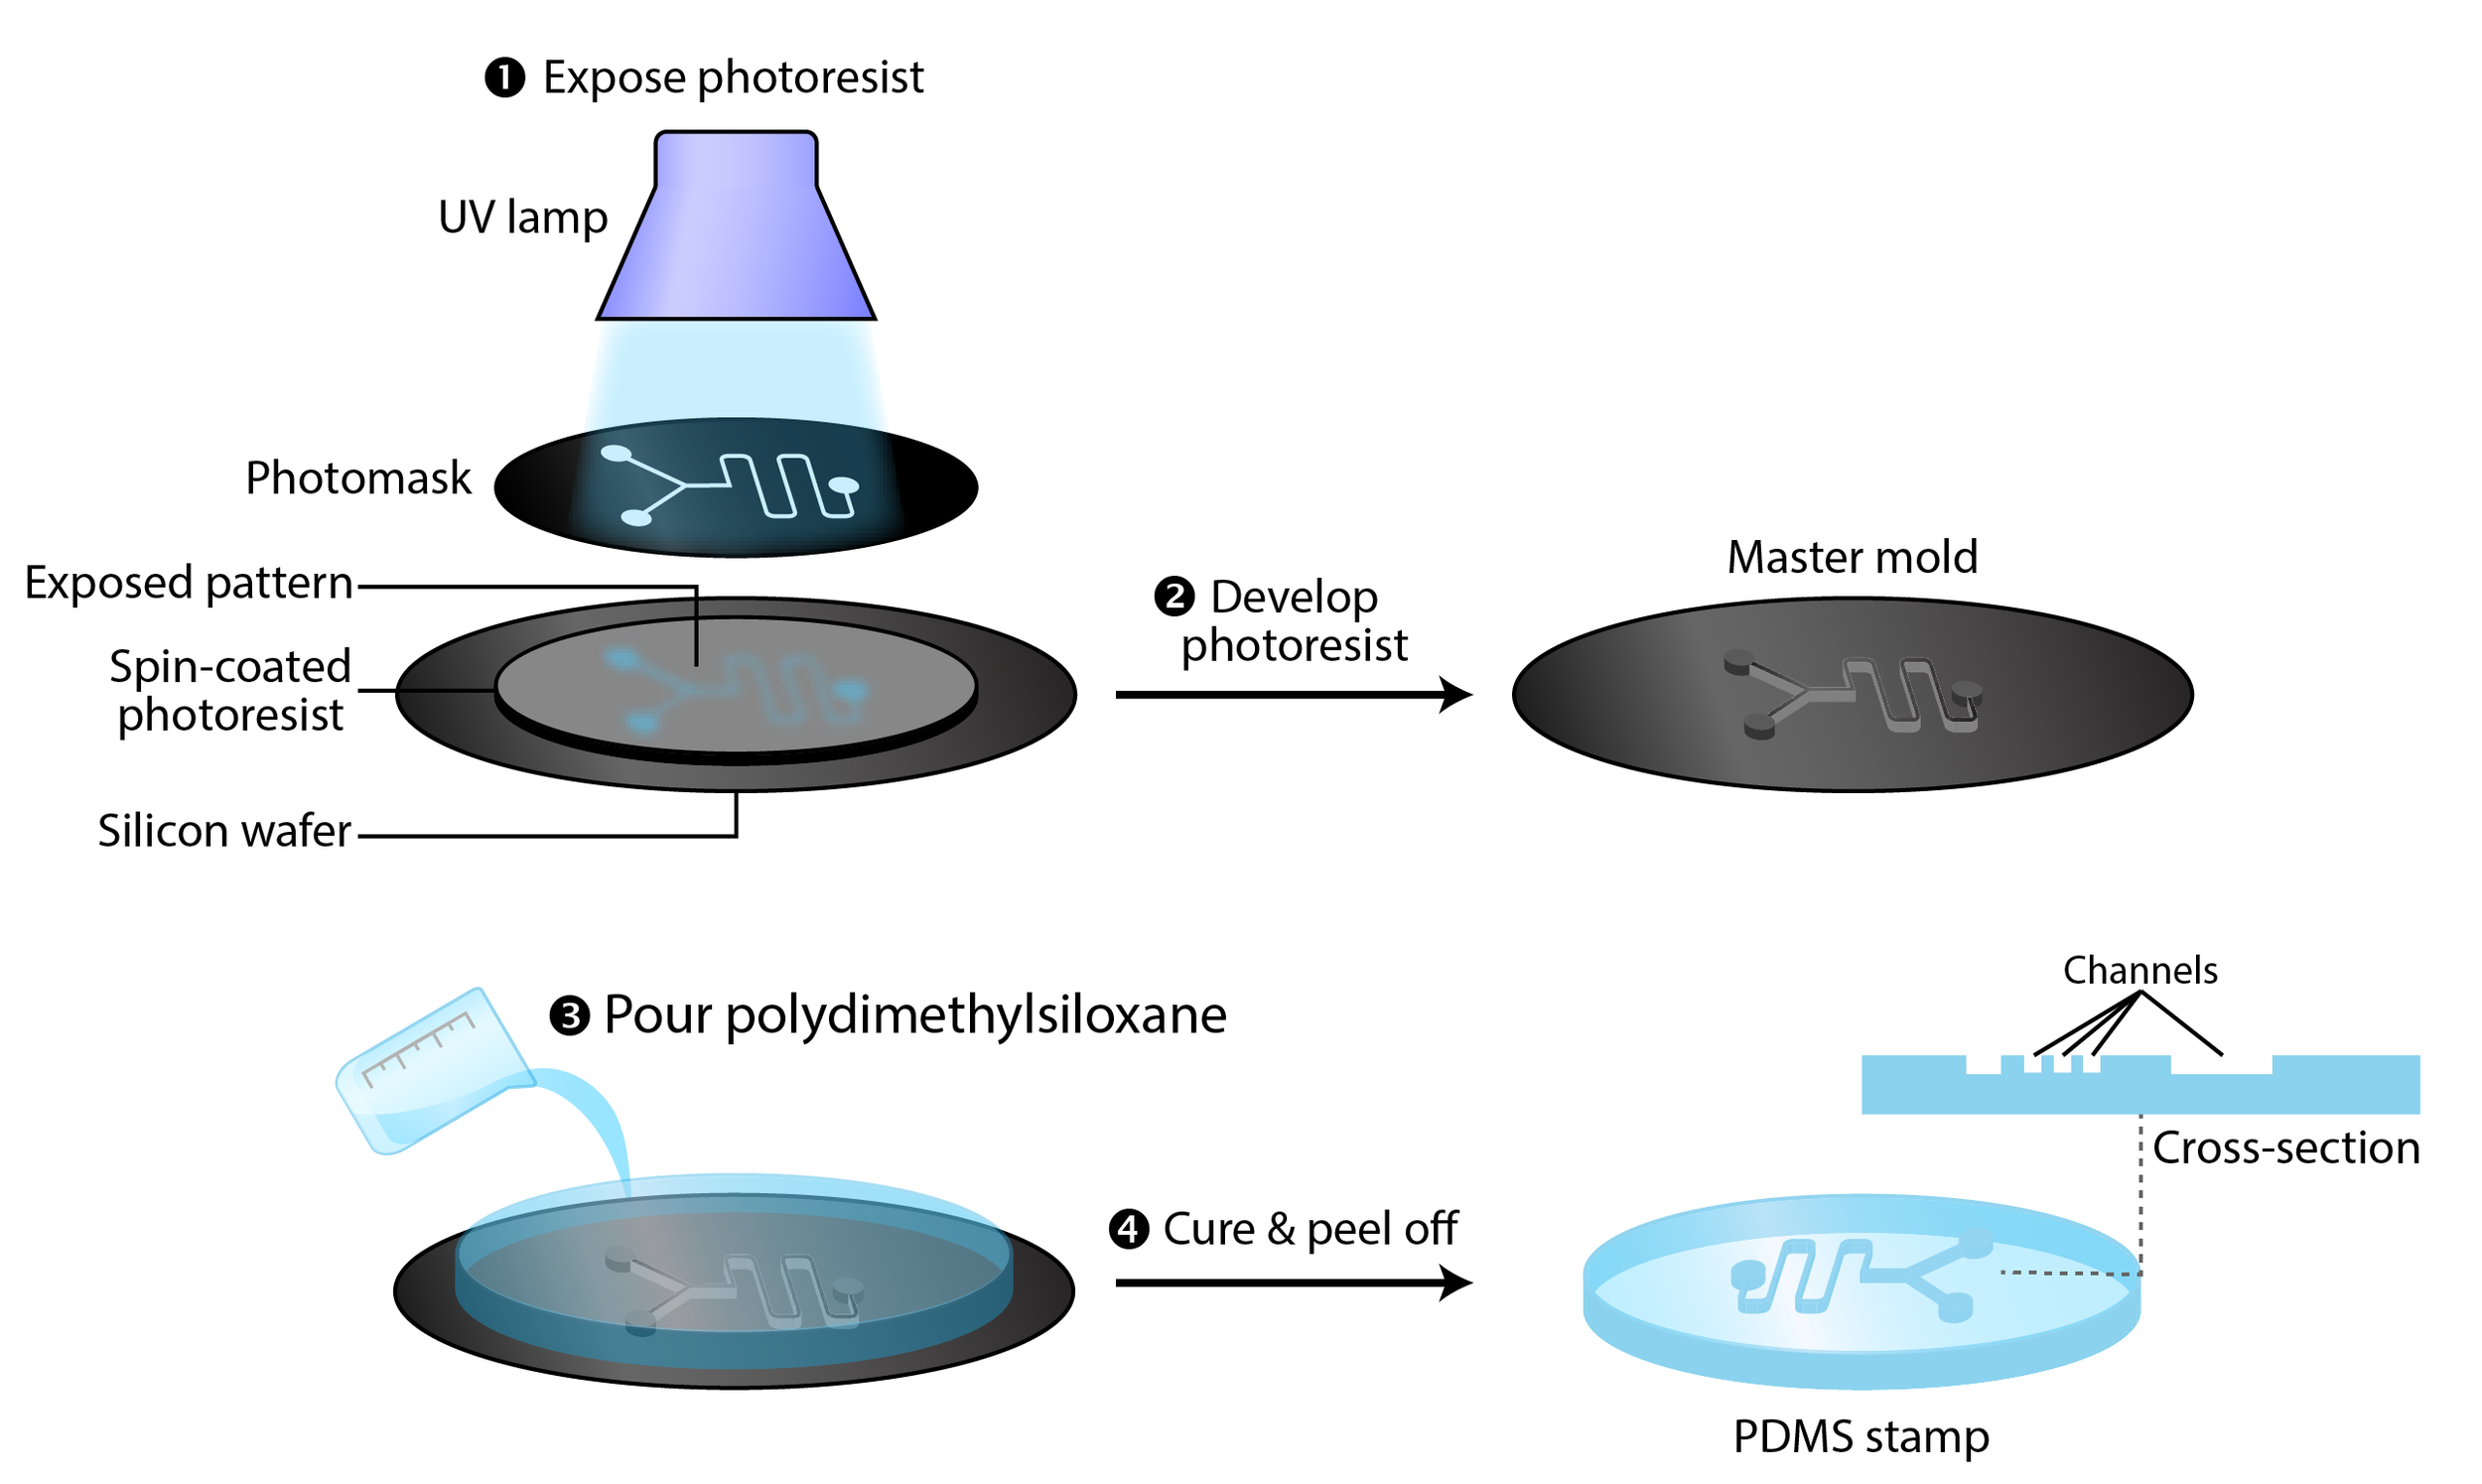 The process of photolithography to make a microfluidic device